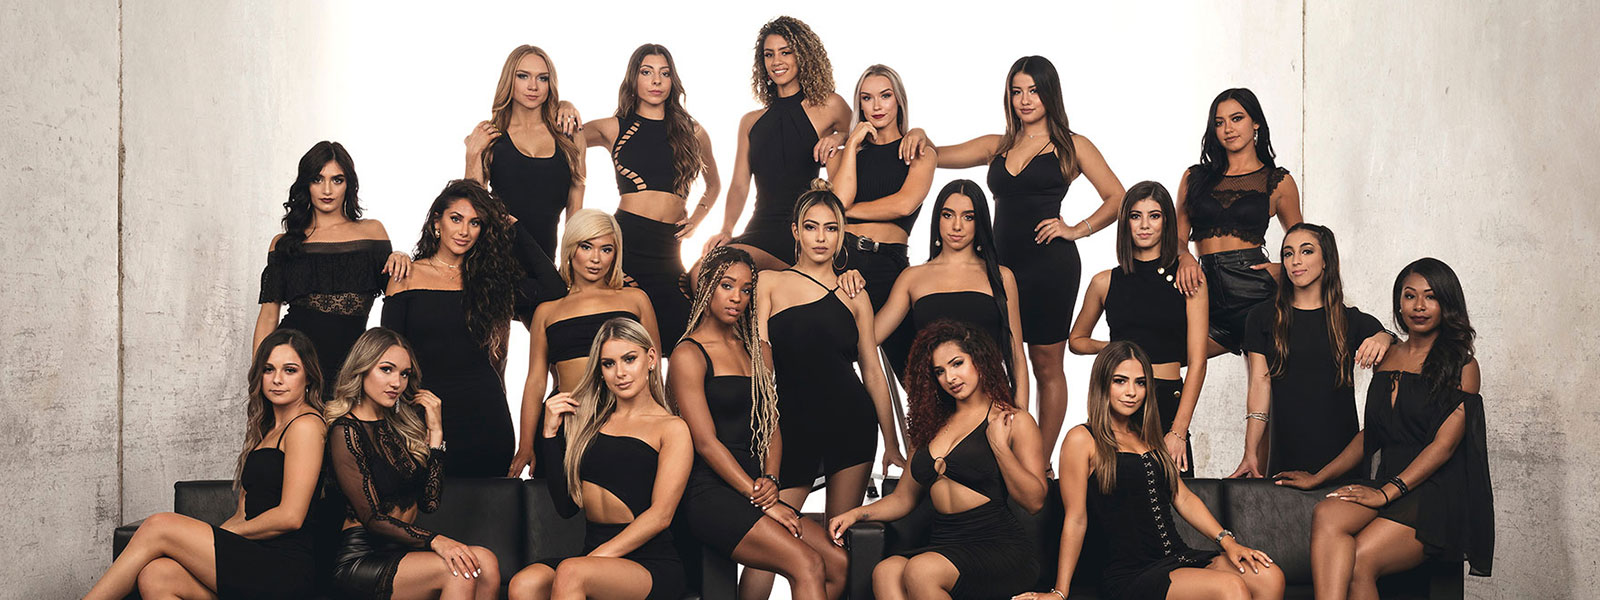 2019-20 Miami HEAT Dancers